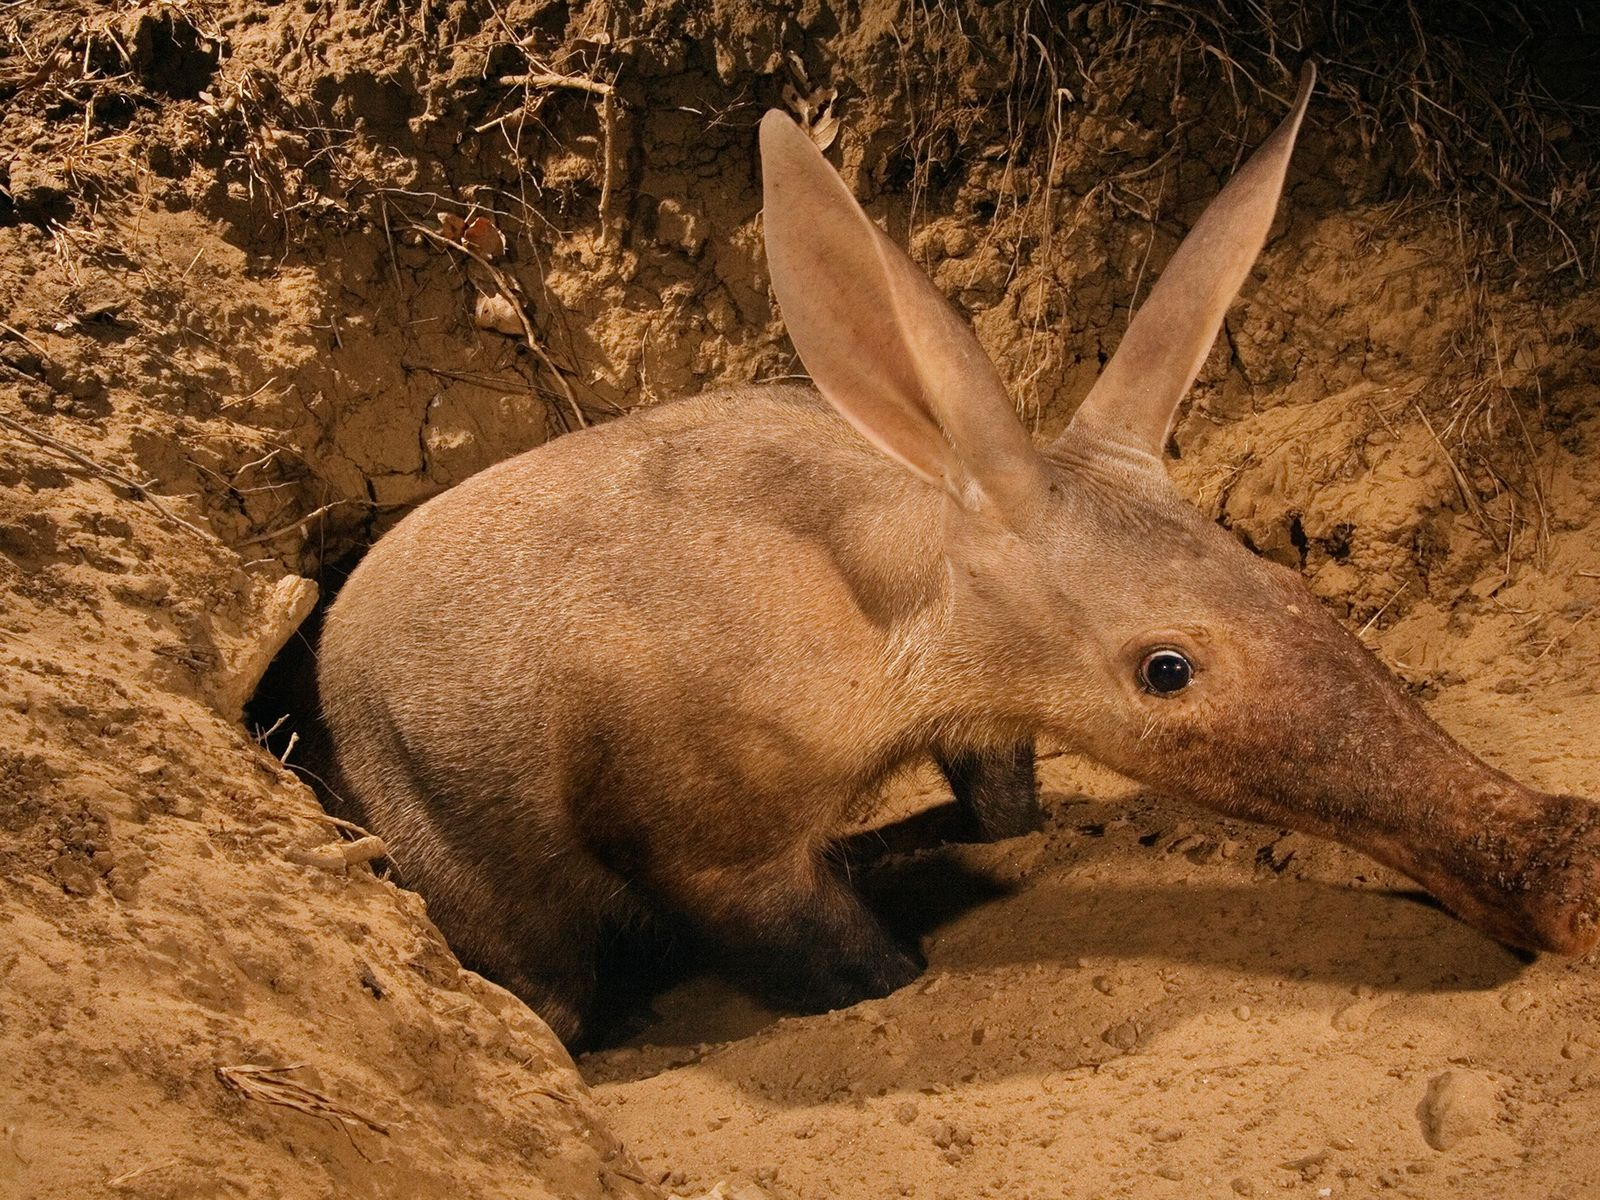 An aardvark emerges from the ground in Luangwa Valley, Zambia. These unique mammals are related to ...